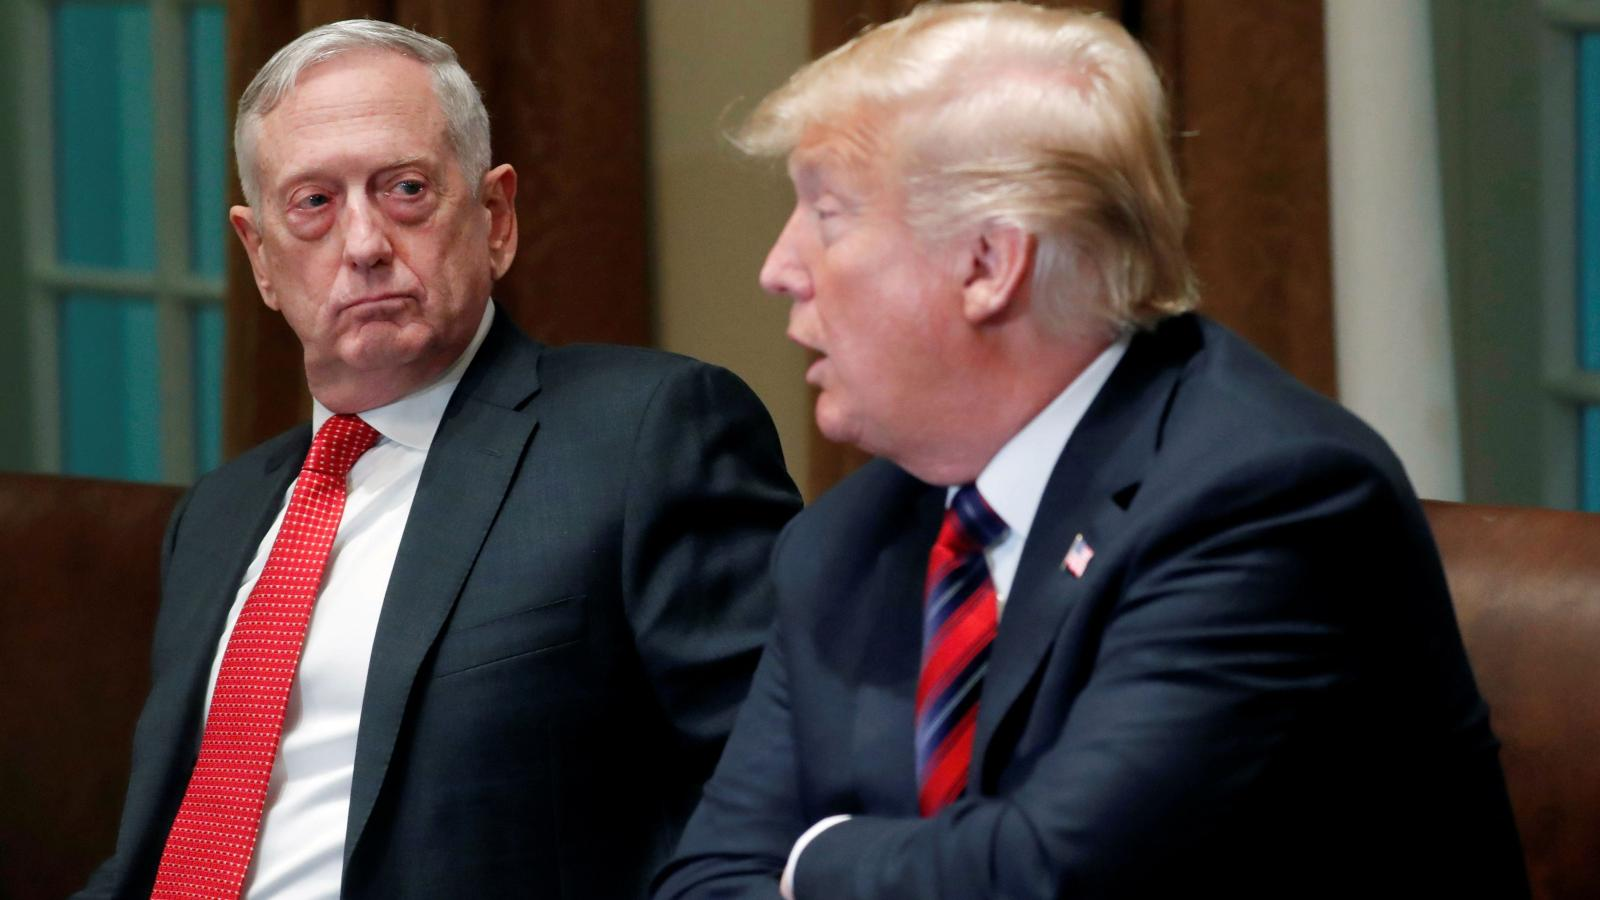 Trump Threatens to Throw His Bone Spurs at Mattis